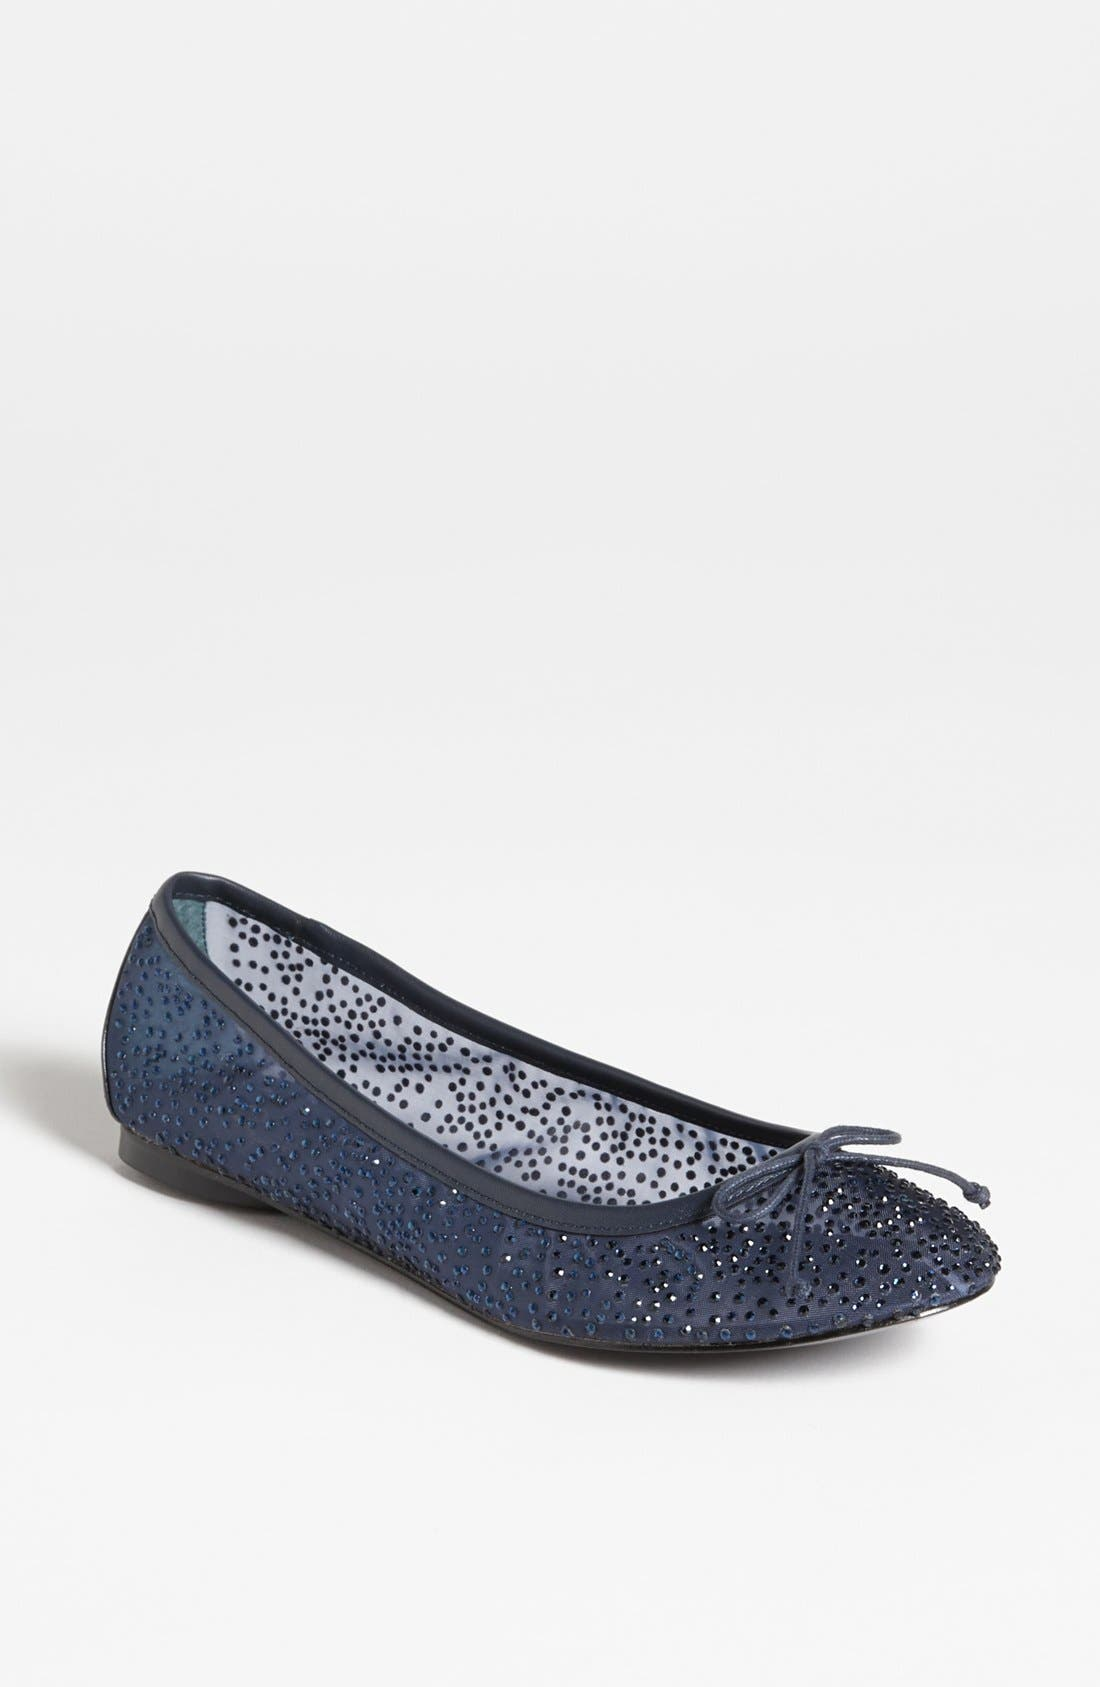 Alternate Image 1 Selected - Adrianna Papell 'Selina' Flat (Online Only)